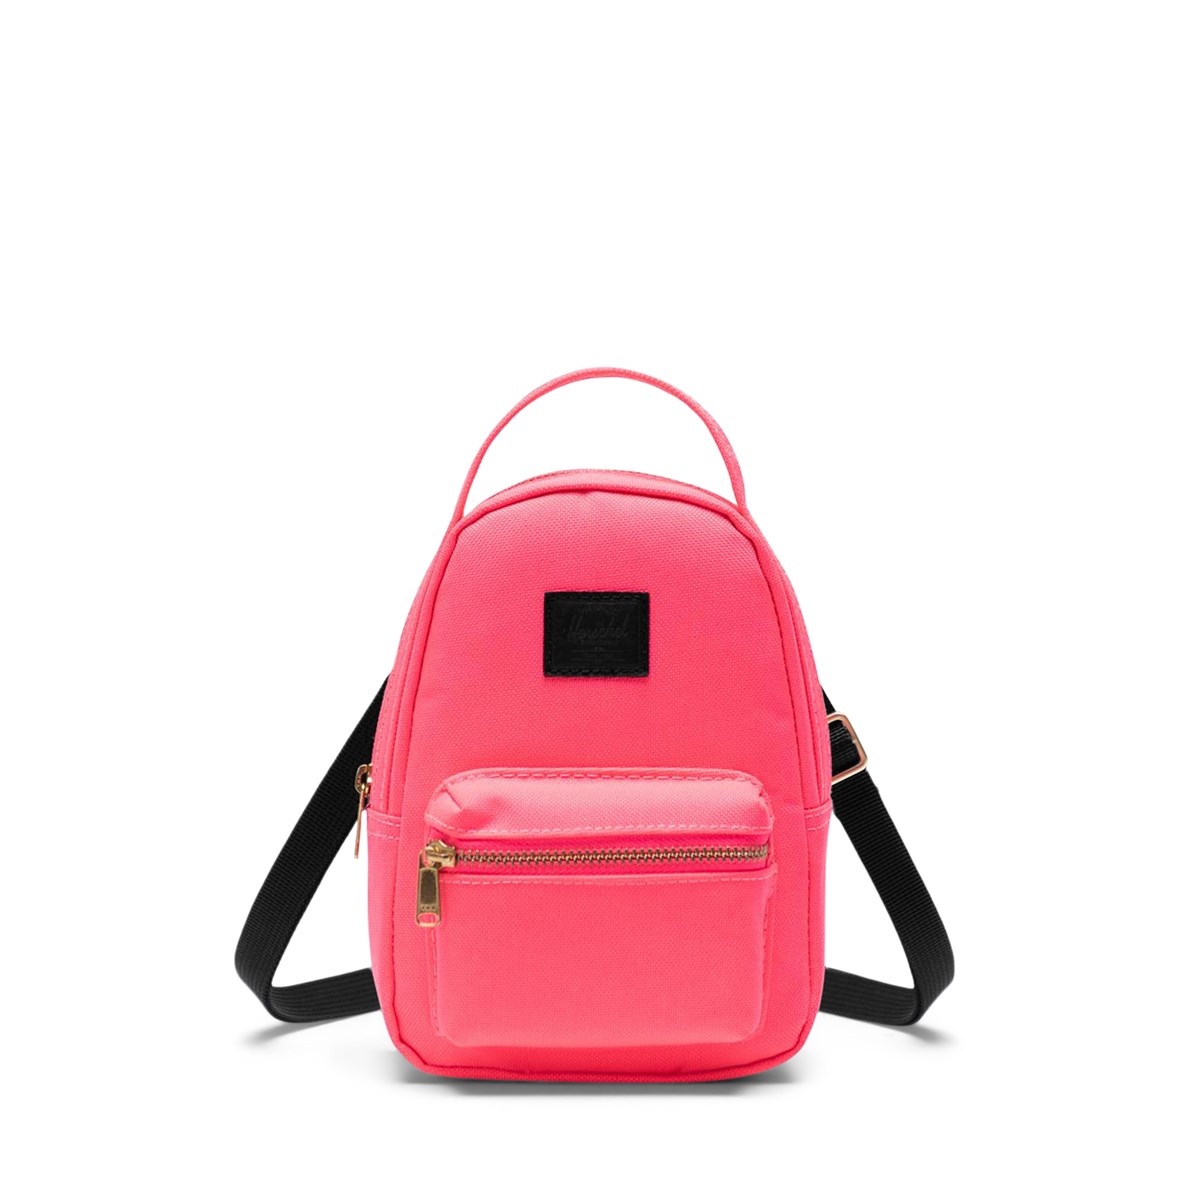 Nova Crossbody Bag in Neon Pink